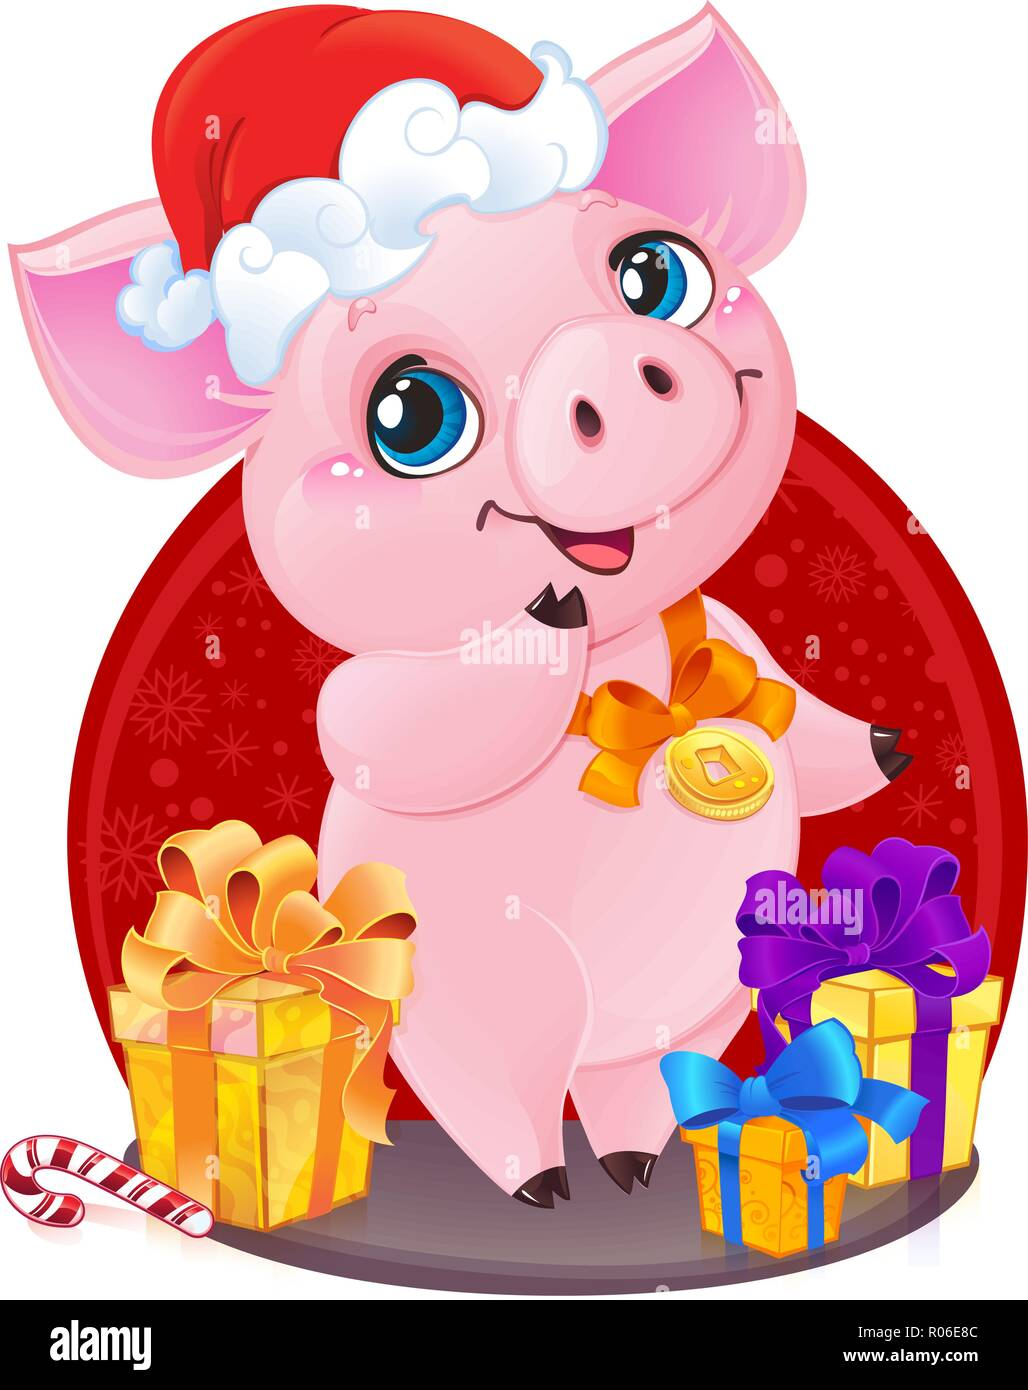 ead3de461 Yellow Earthy Pig for the New Year 2019. Cute Symbol of Chinese Horoscope.  Cute little piglet with Christmas gifts wishes you joy and happy New Year